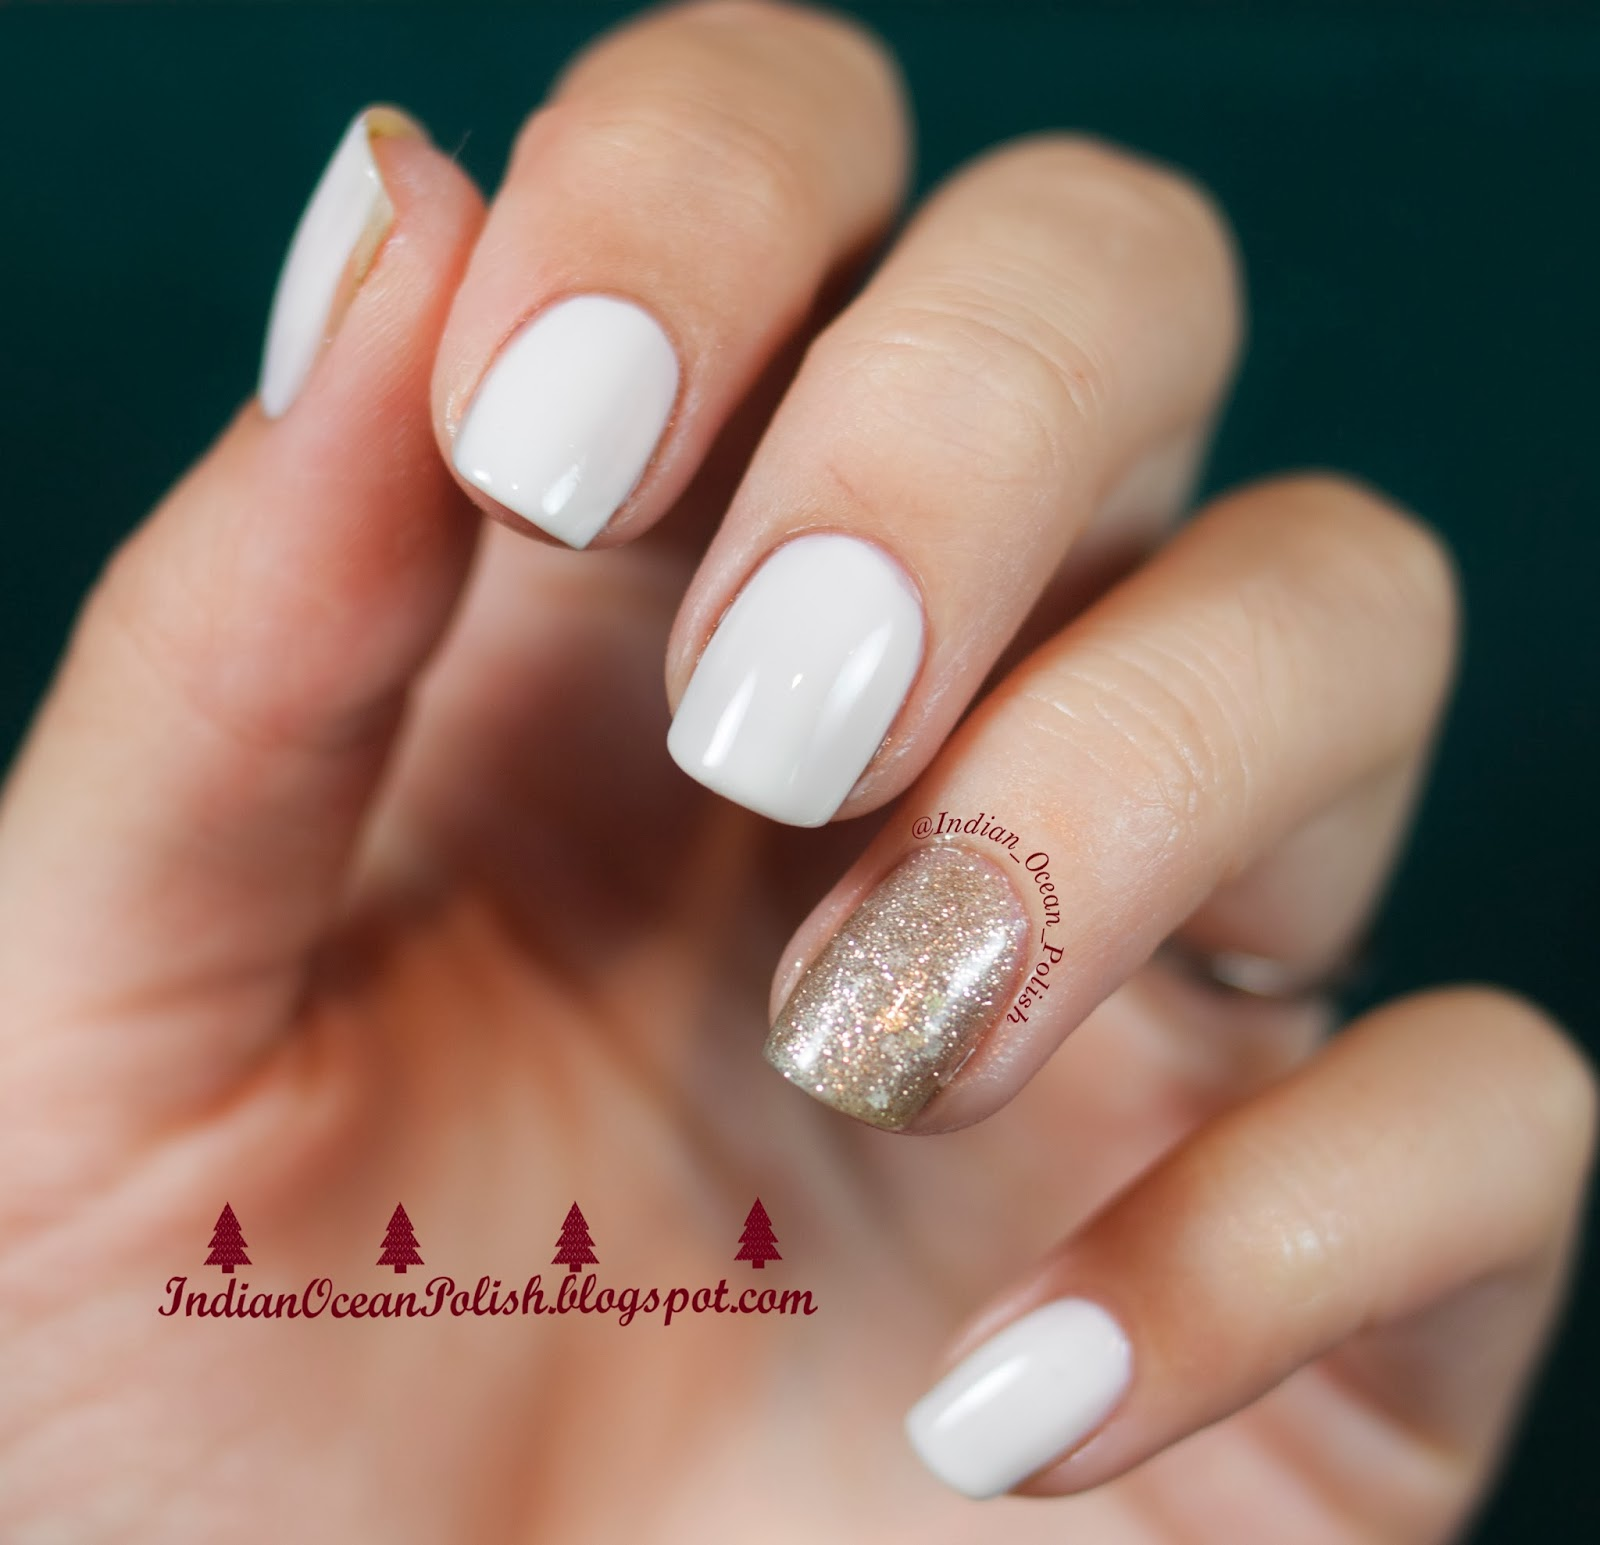 White square nails monday february 13 2017 prinsesfo Gallery